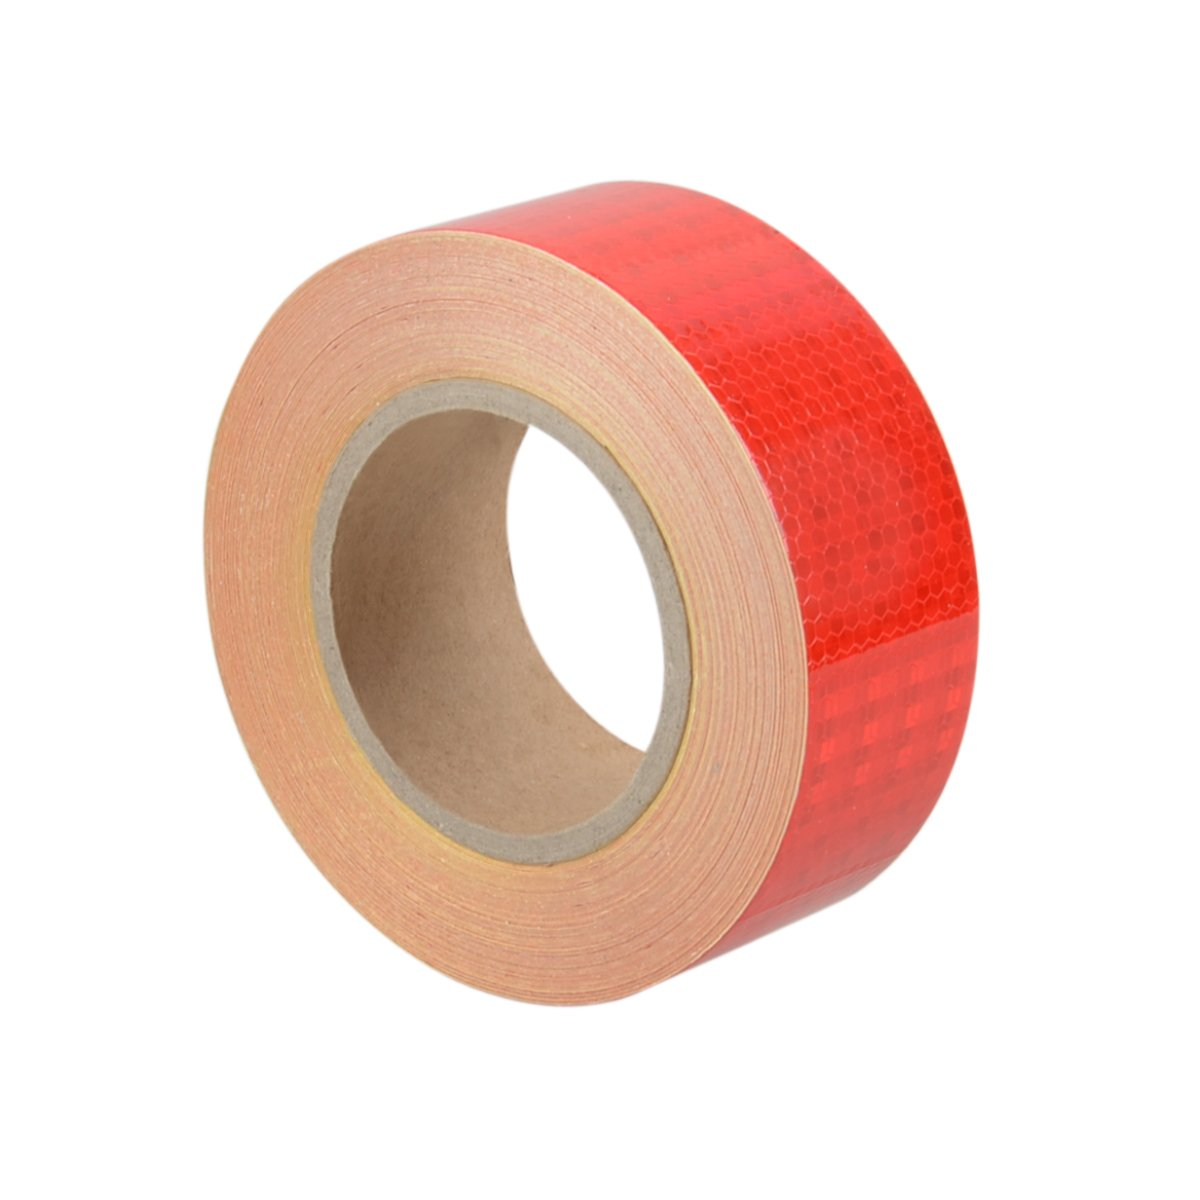 2'' x 150 Feet Reflective Safety Tape Red Hazard Caution Adhesive Stickers, Reflector Tape Red For Trailers